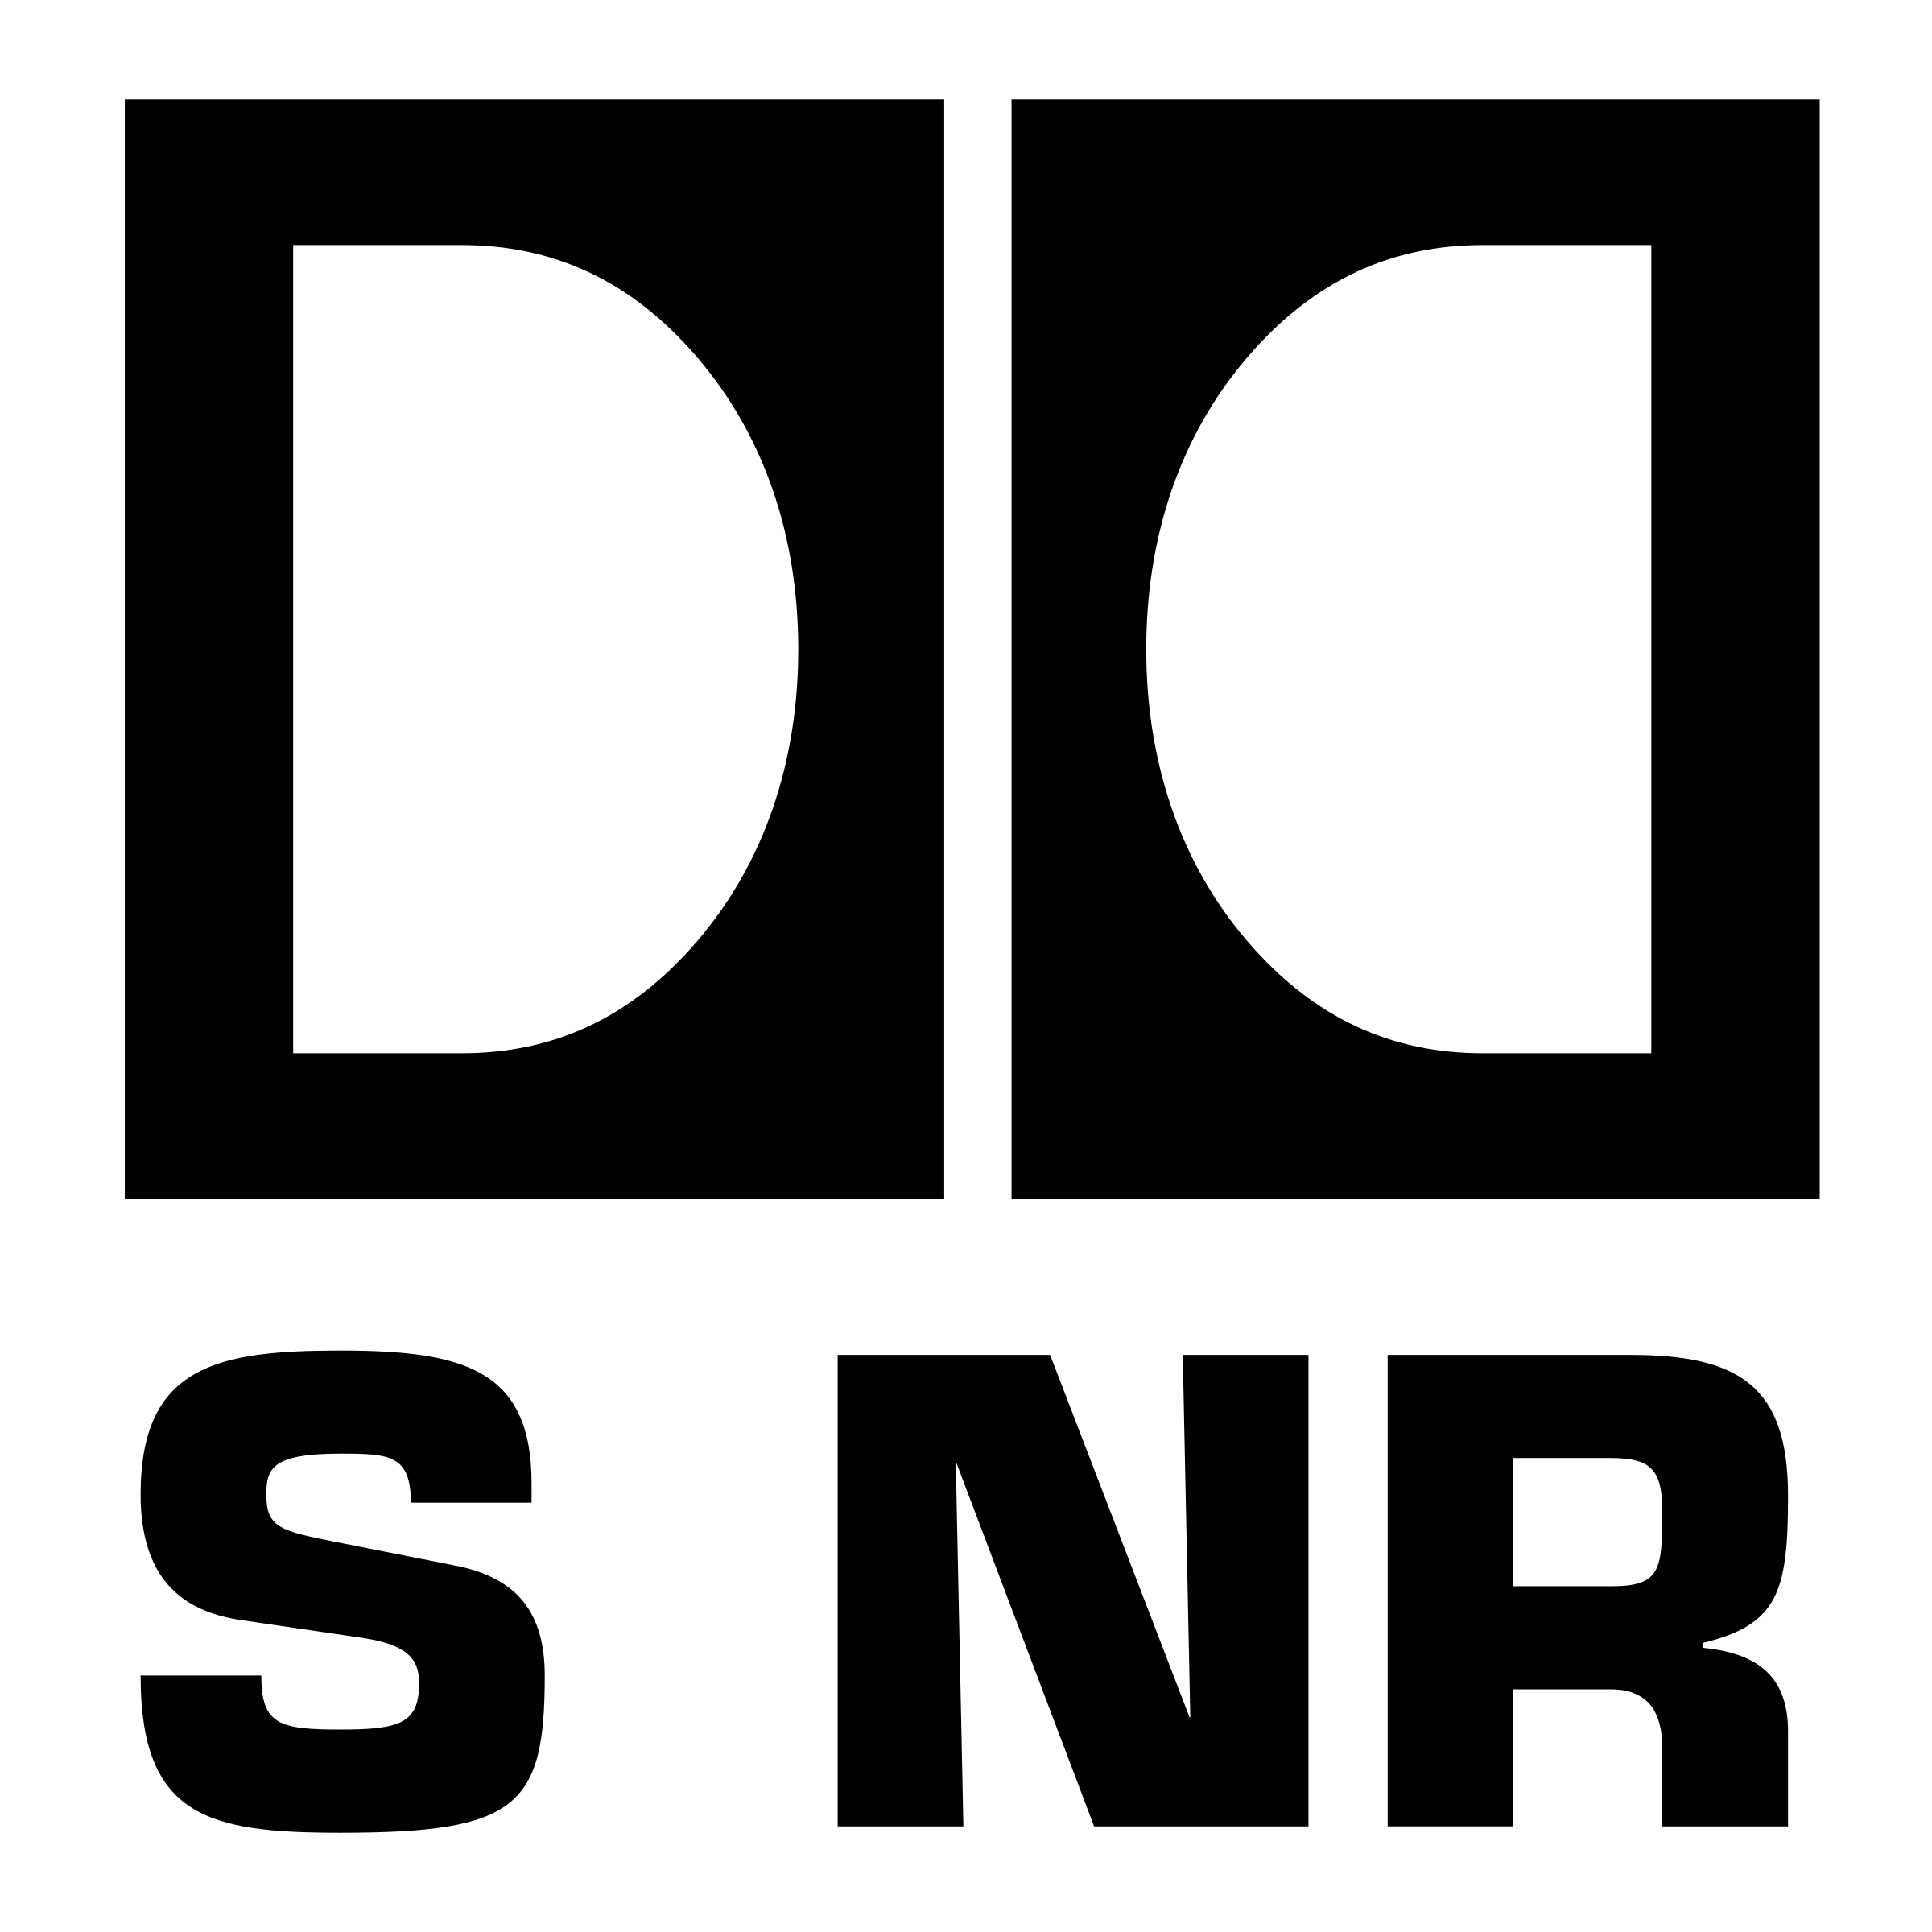 Noise vector png transparent. Dolby s reduction logo